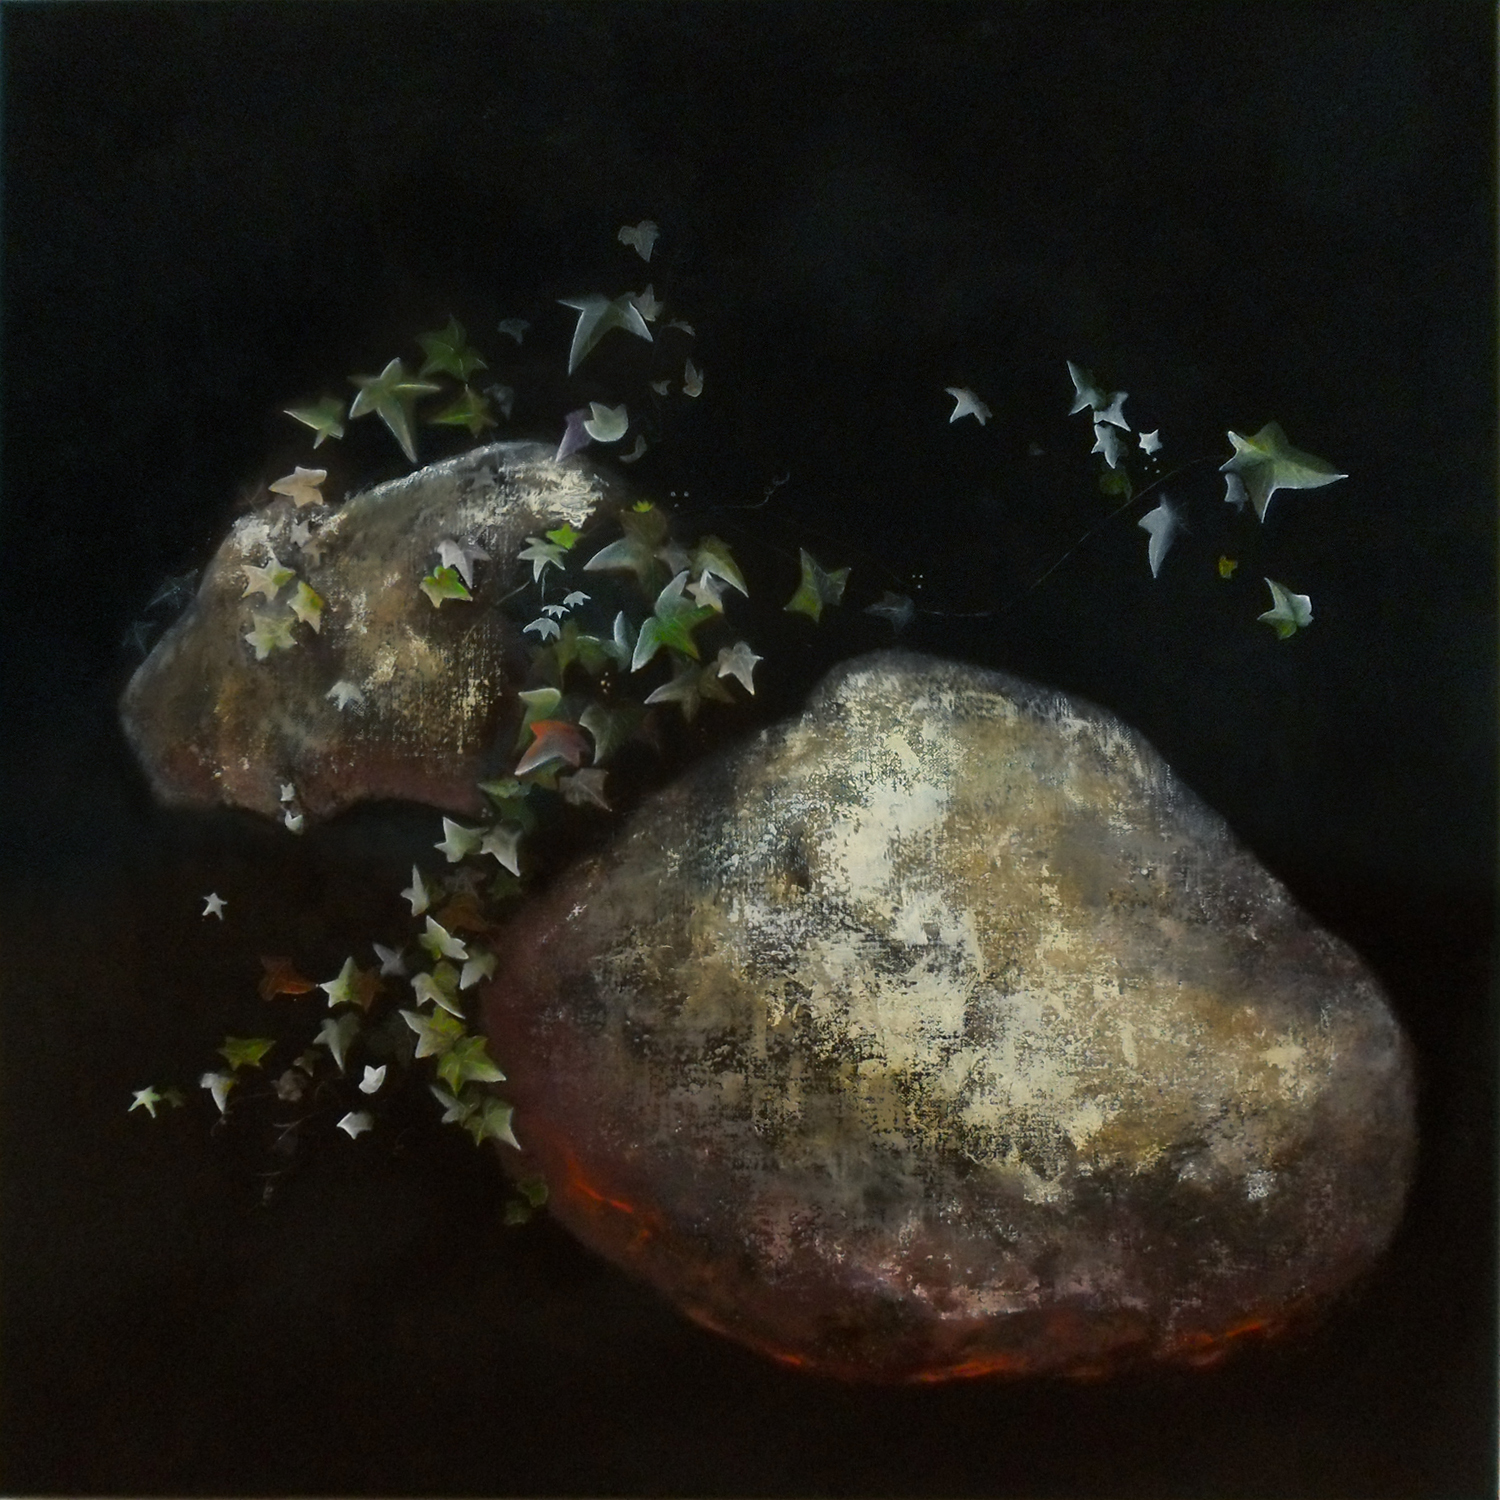 Penelope Aitken, Ivy, remembering violets, 2011, oil and acrylic on linen, 47 x 47 cm